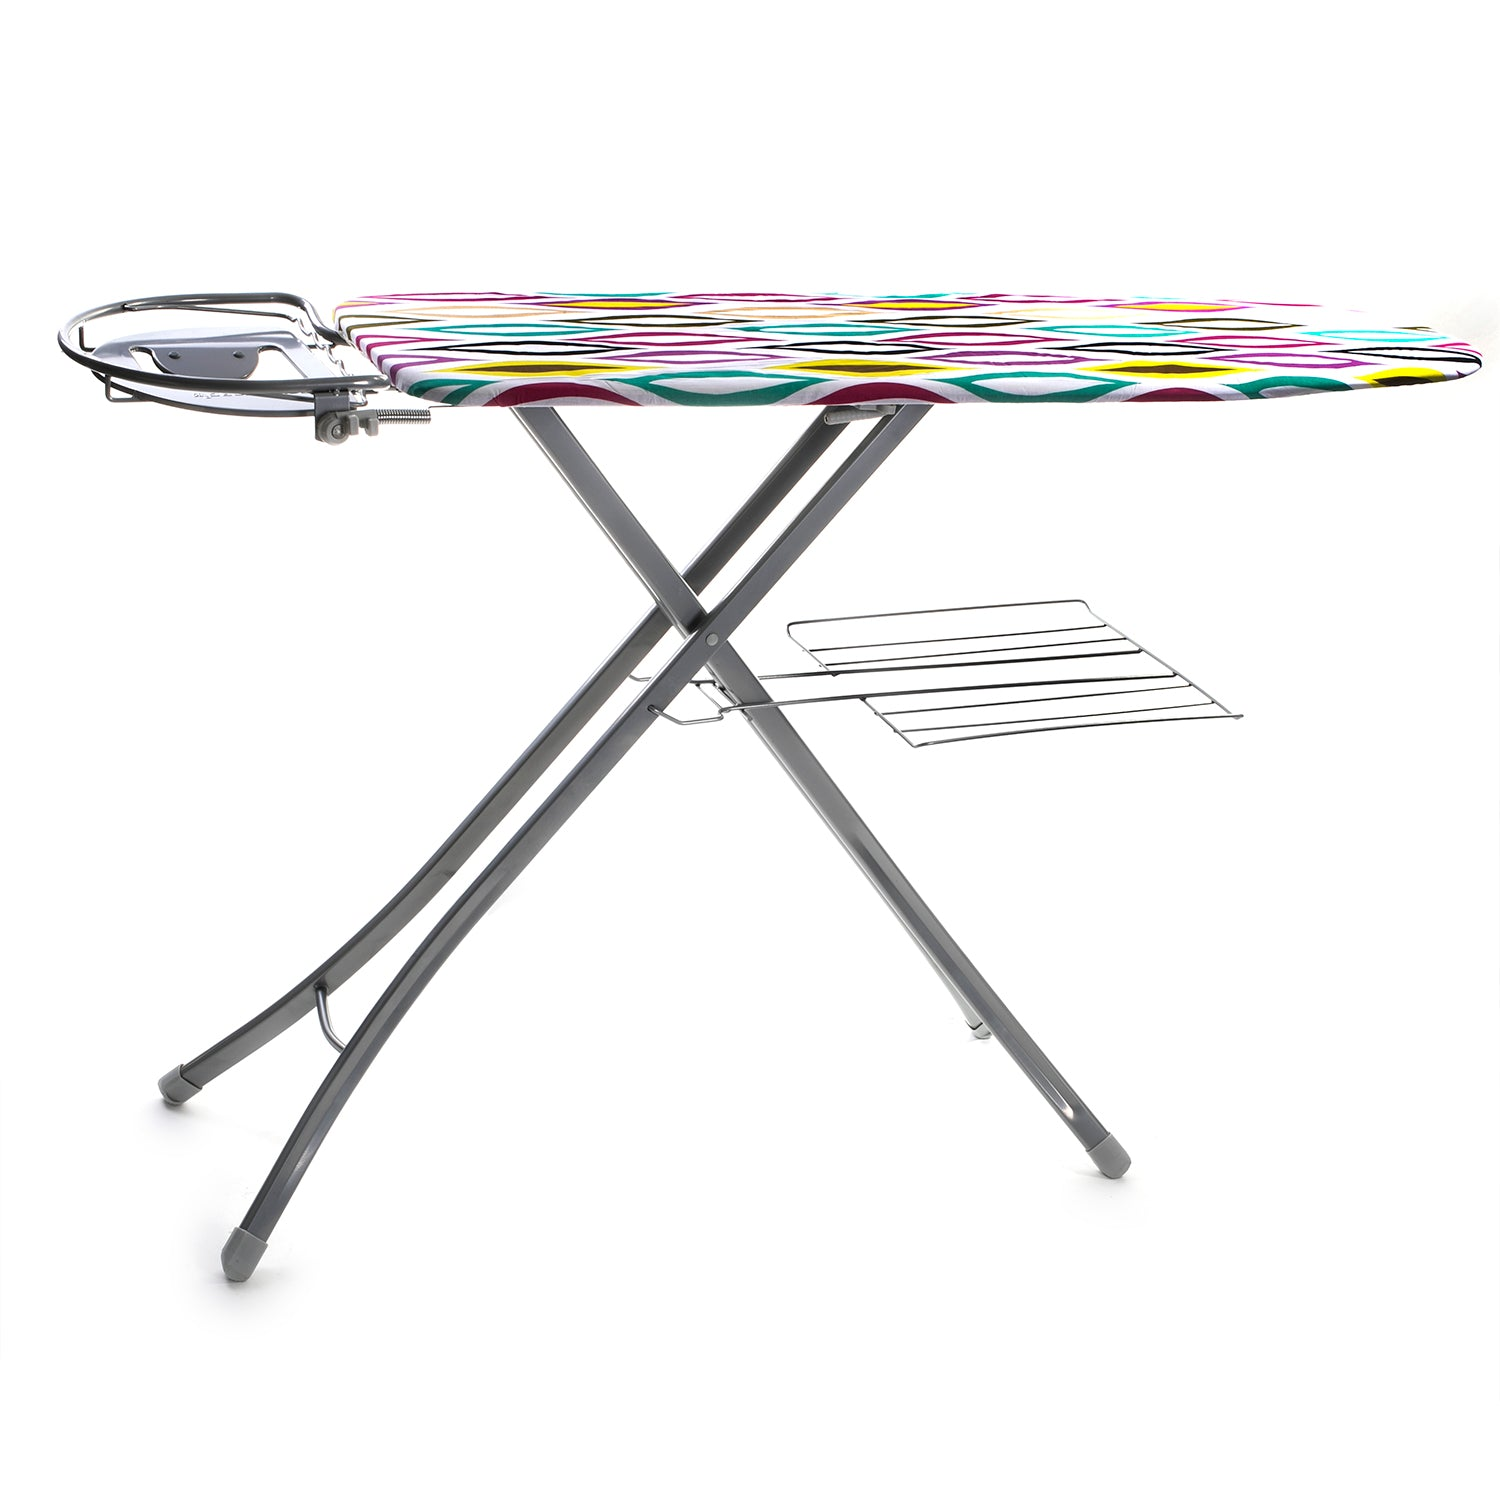 Royalford RF366IBM Mesh Ironing Board with Attached Cloth Rack, 122x38cm | Lightweight and Compact Ironing Board with Height Adjustment Feature